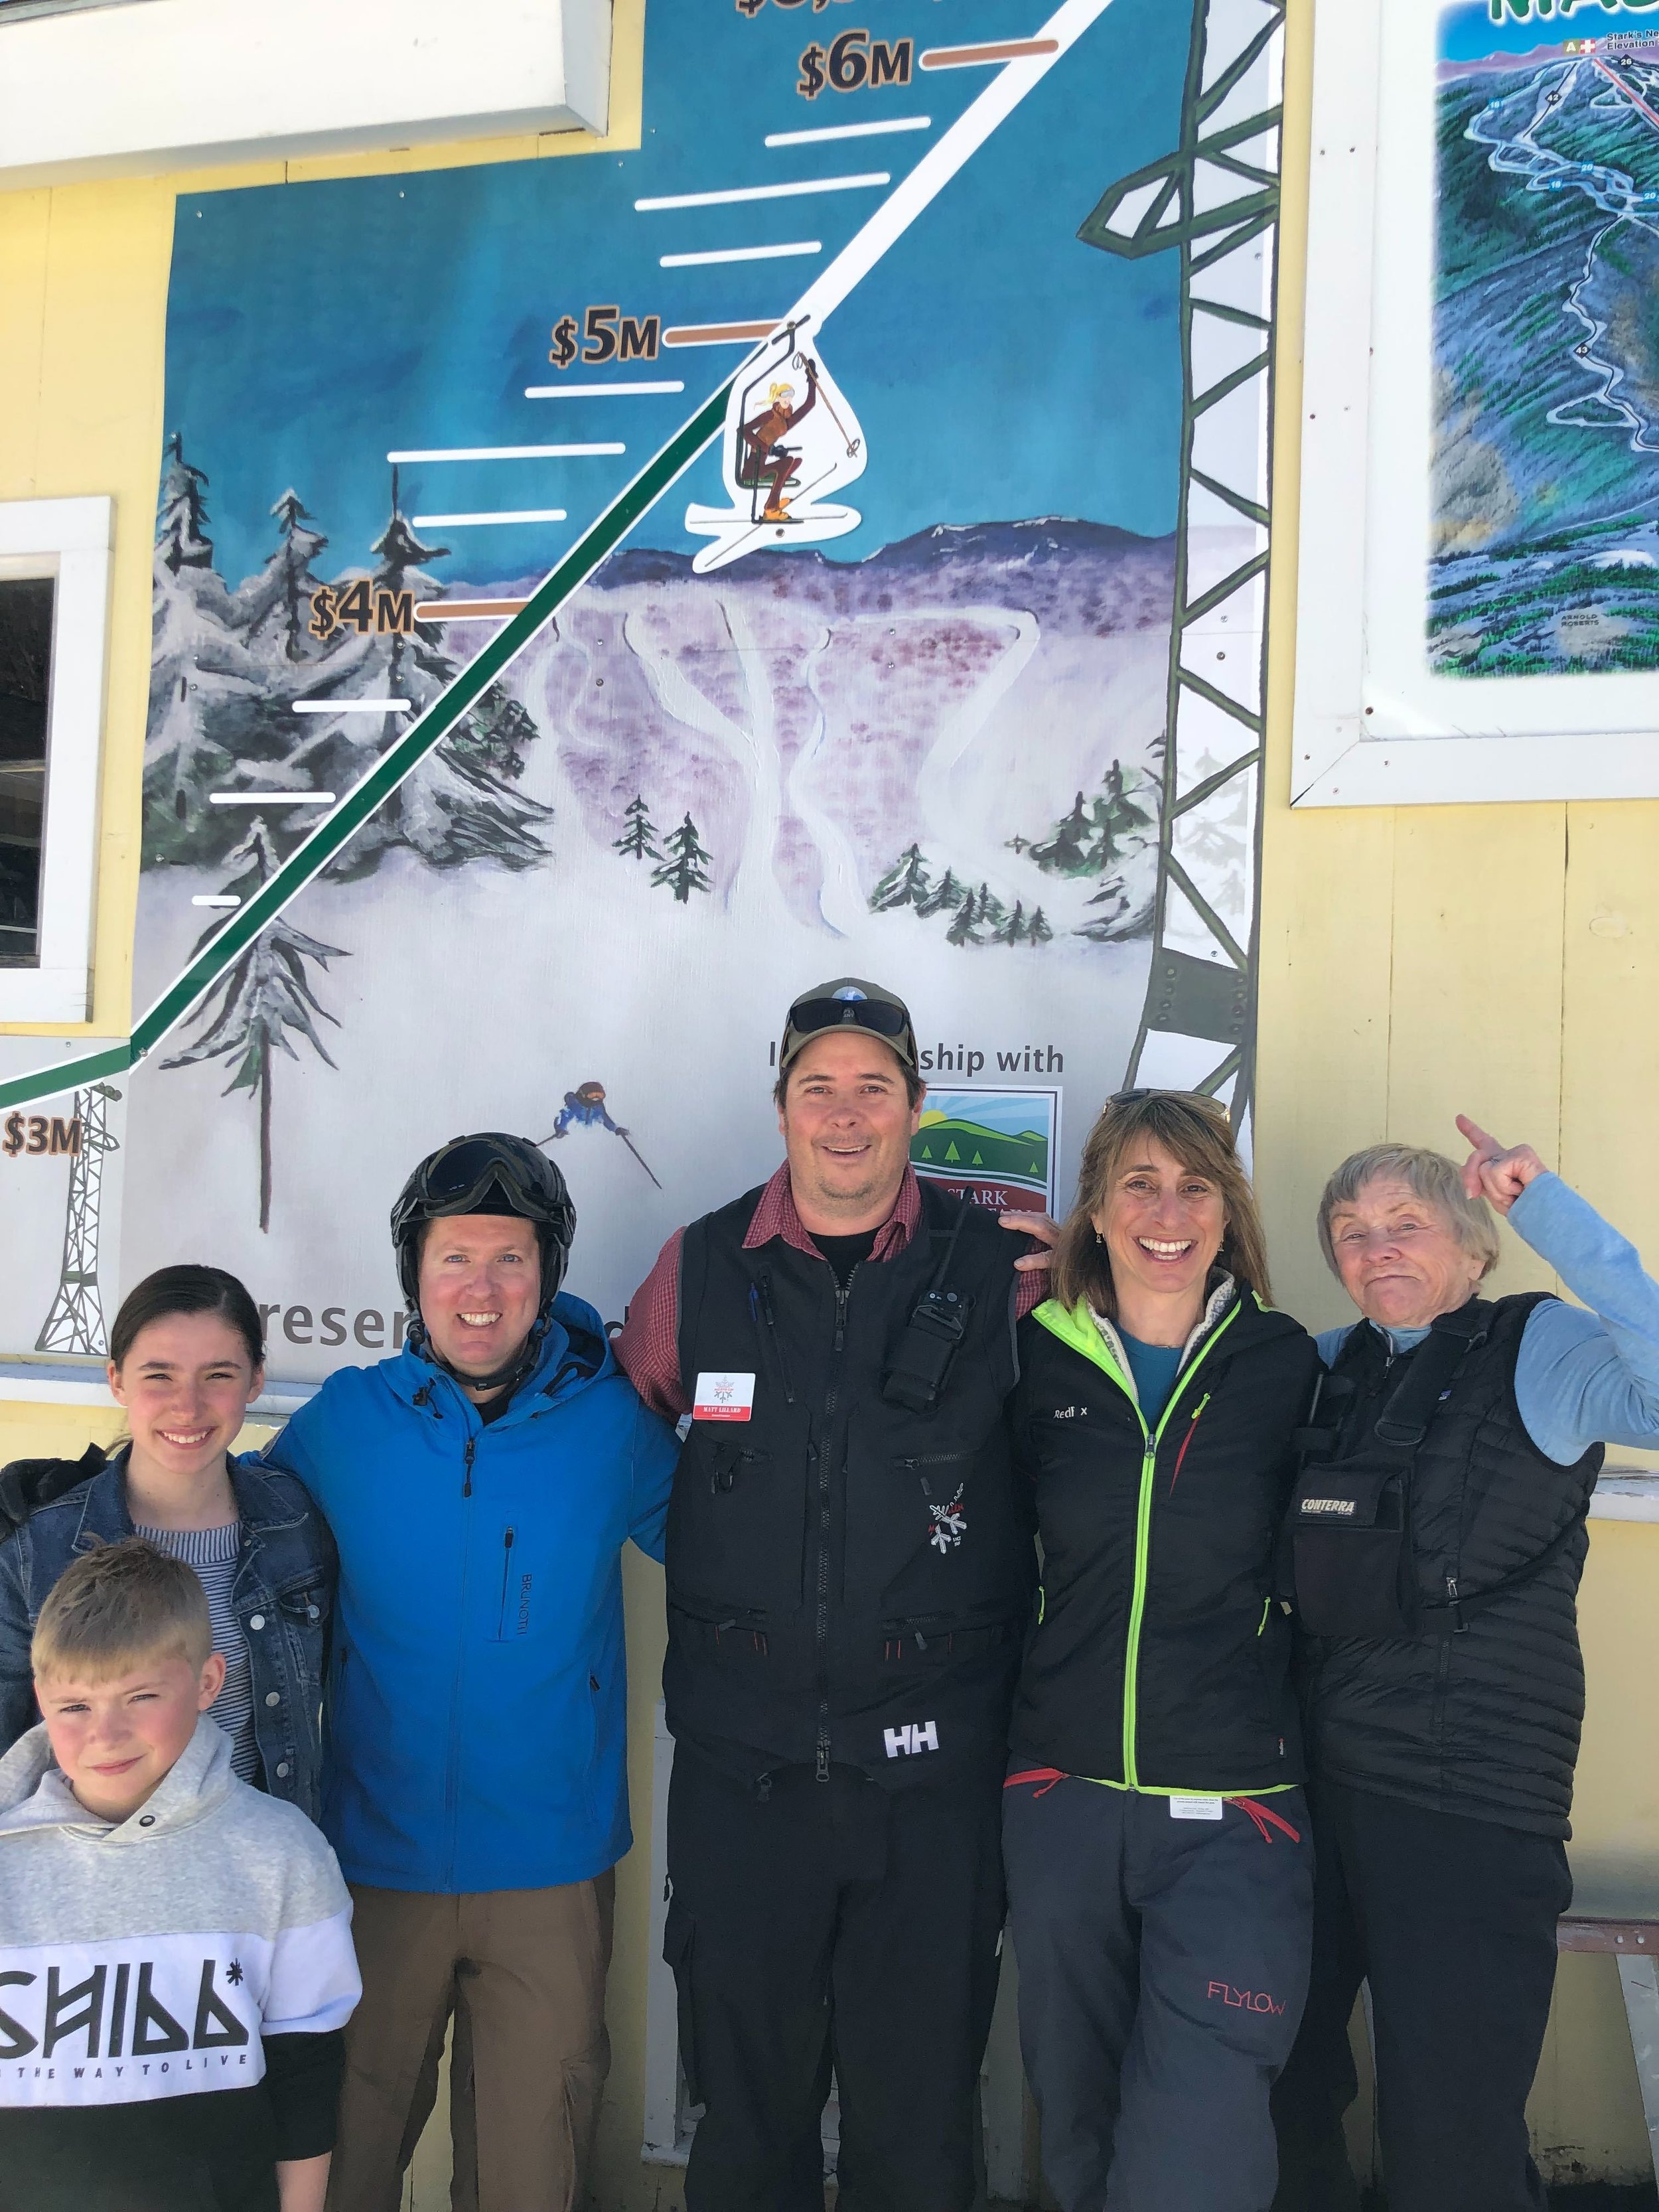 From left to right: Fourth generation MRG skiers, Beau and Eleanor Hume; MRG Accounting Manager Andrew Snow; MRG GM Matt Lillard; Campaign Co-Chair Annika Holtan; and Lu Putnam (MRG skier since 1949).